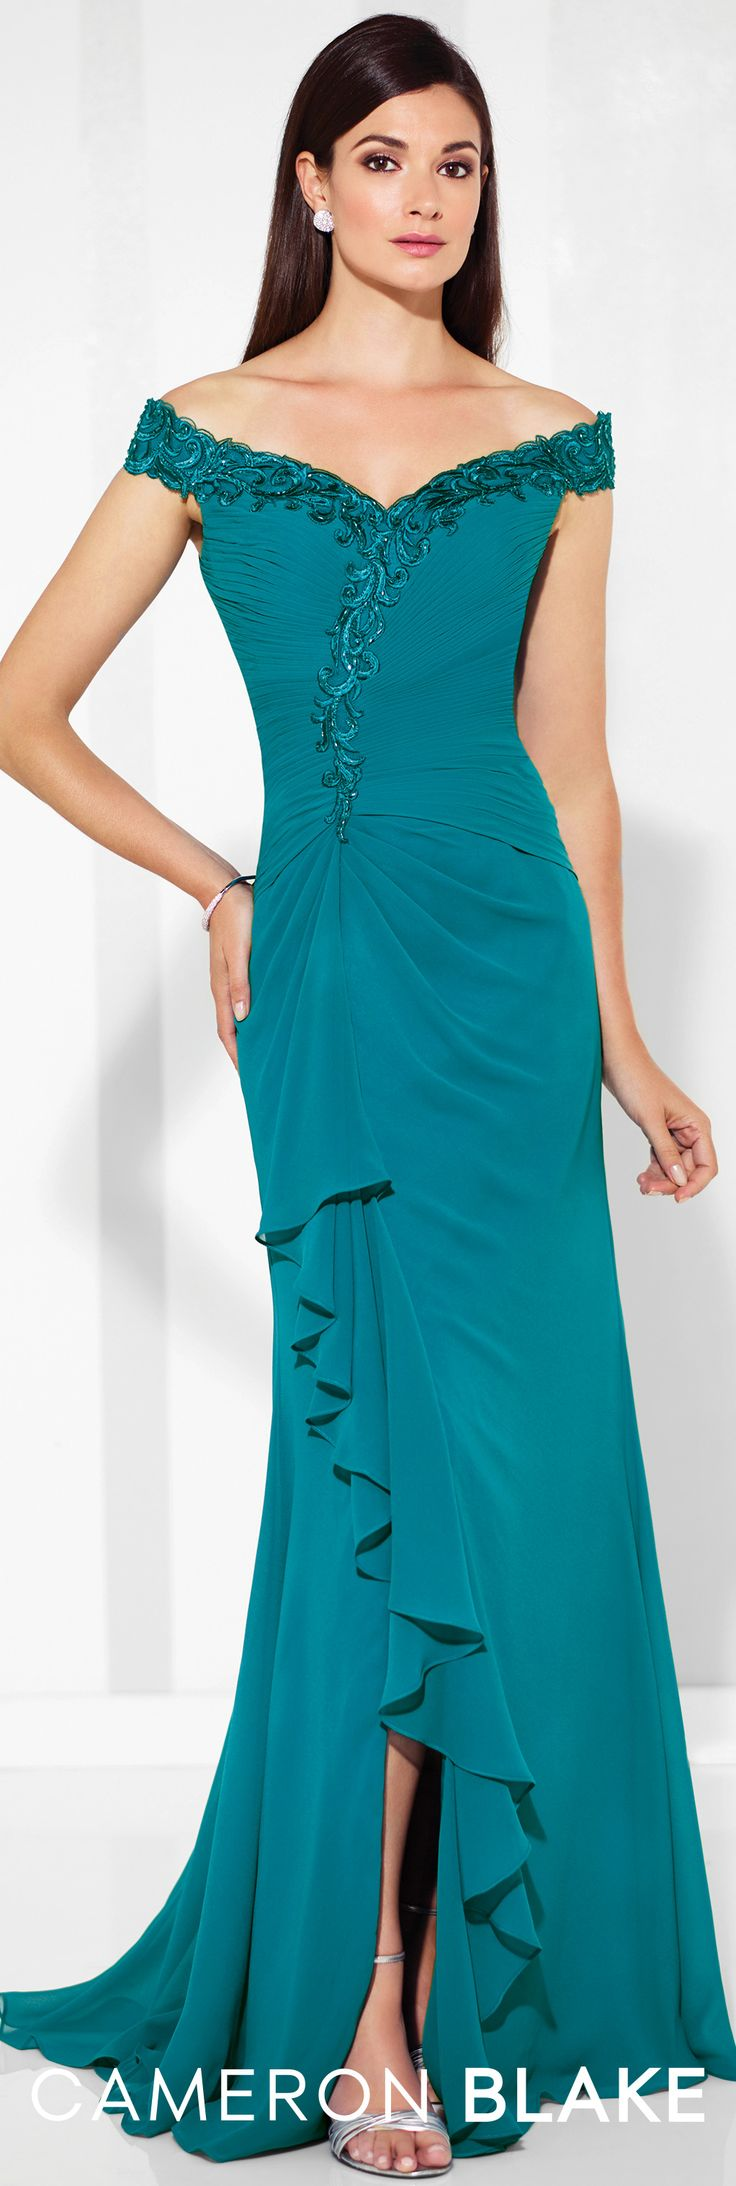 Formal Evening Gowns by Mon Cheri - Spring 2017 - Style No. 117602 - teal off-the-shoulder chiffon evening dress